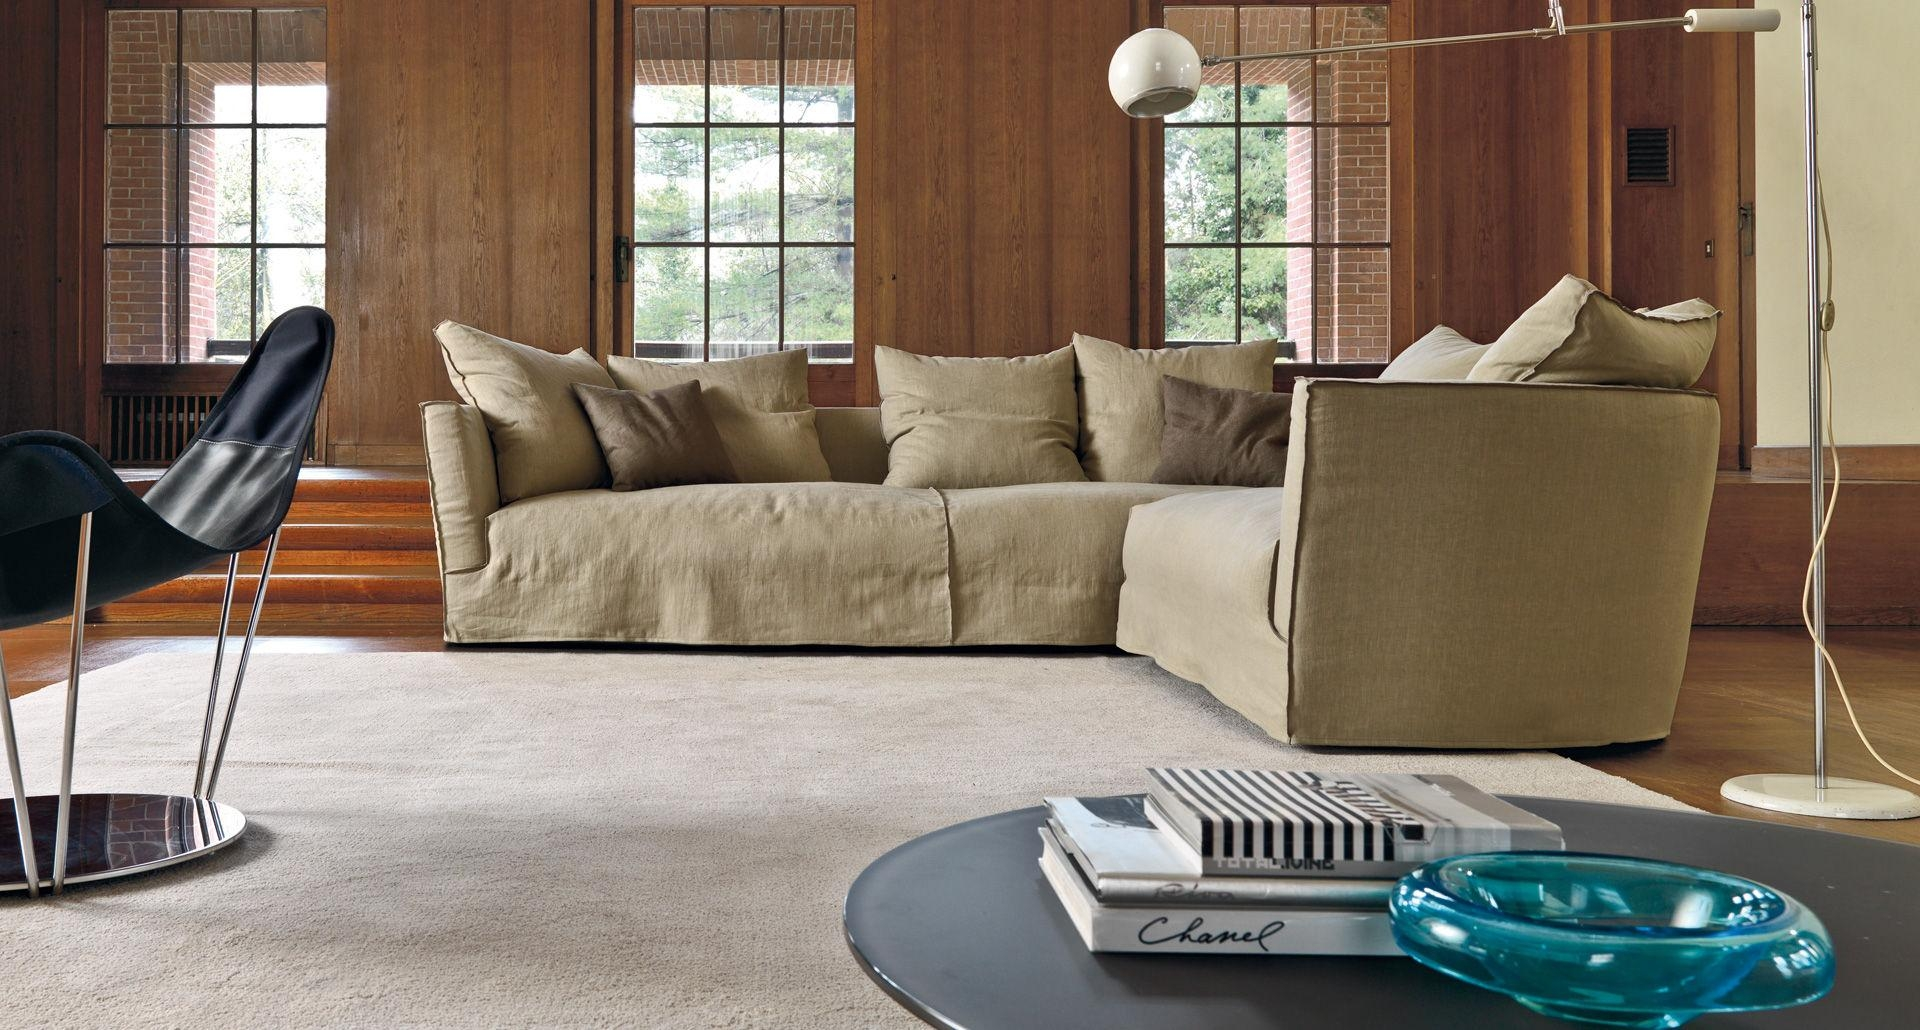 Modular Sofa / Contemporary / Fabric / 4 Seater – Lov Trend Pertaining To Sofa Trend (View 5 of 20)